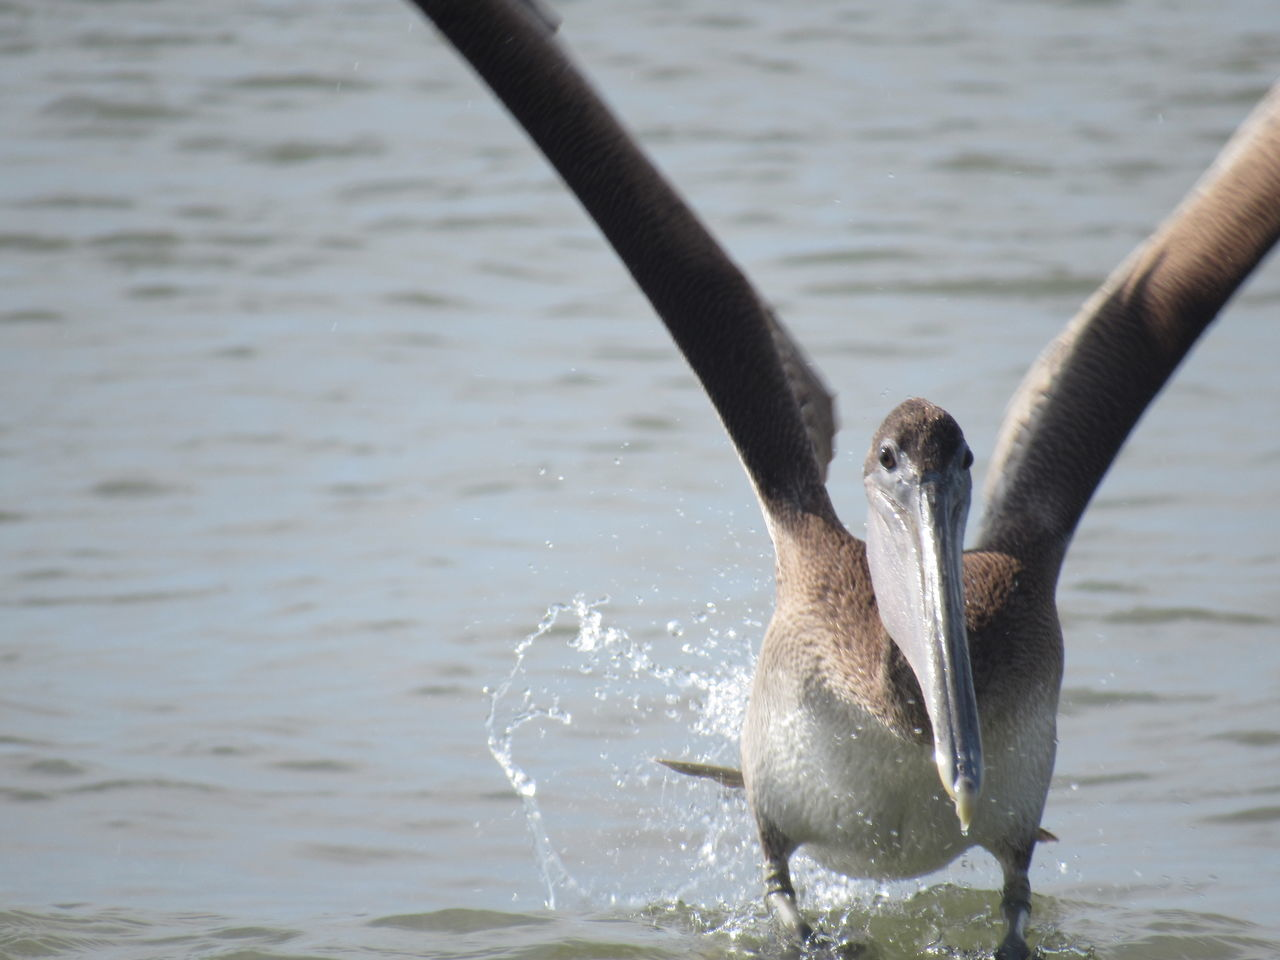 The Brown Pelican Animal Behavior Animal Themes Animals In The Wild Avian Bird Close Up Day Focus On Foreground Long Beak No Edits No Filters No People Non-urban Scene Ocean View Outdoors Splashes Of Water Splashing Spreading Wings Tranquility Water Water Bird Wildlife Zoology